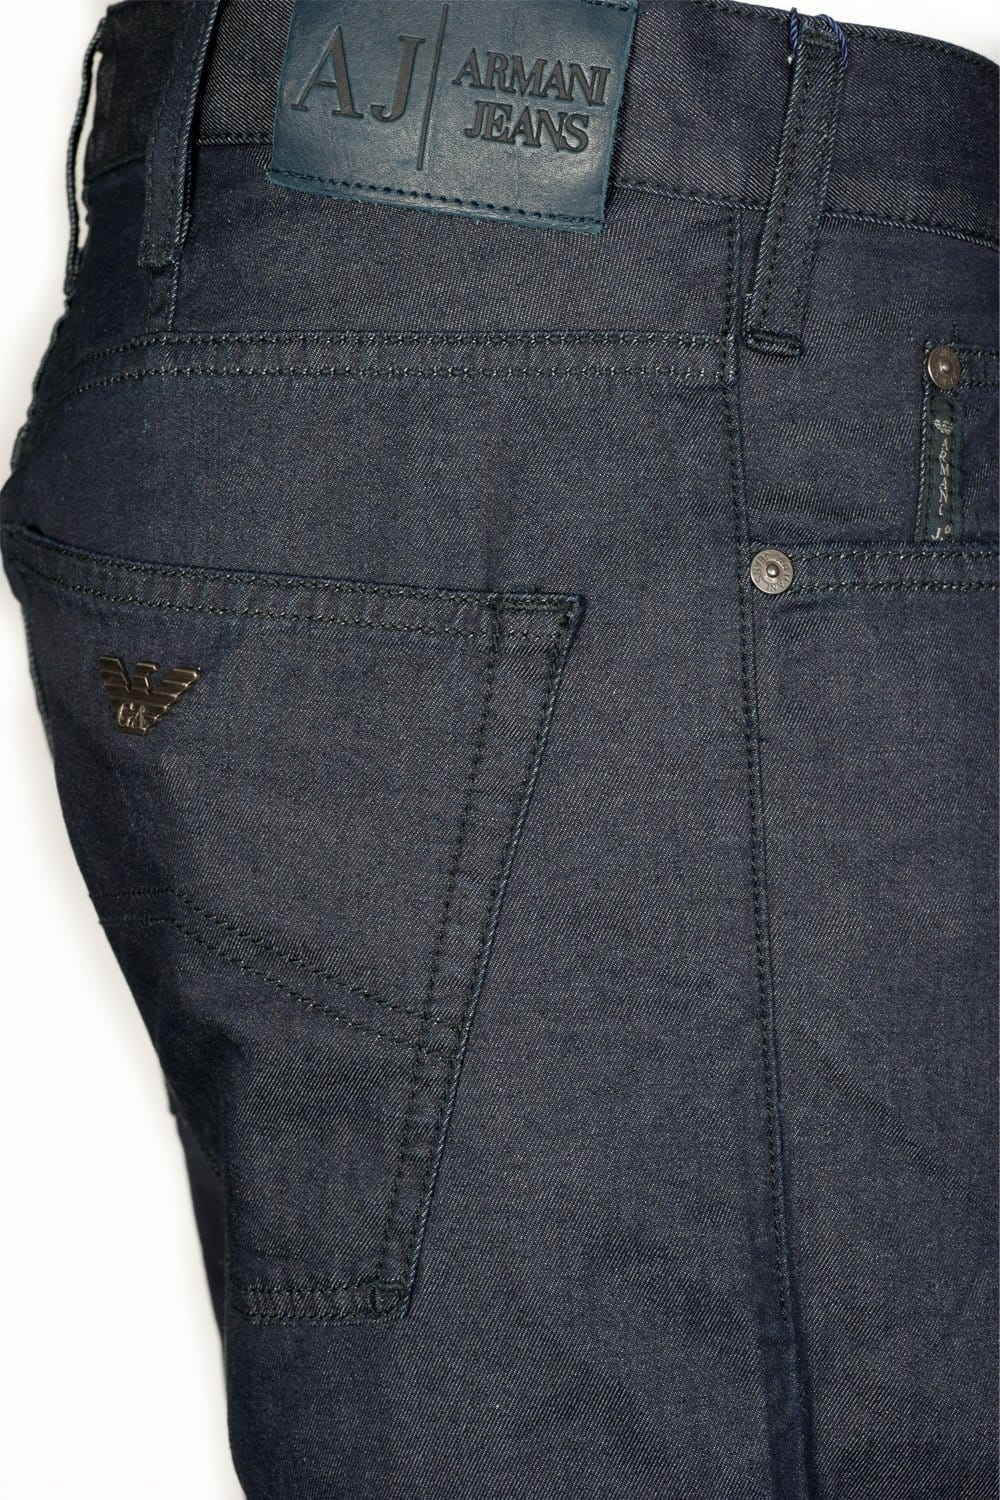 Armani Jeans Regular Fit Stretch Denim Jeans in Indigo and ...